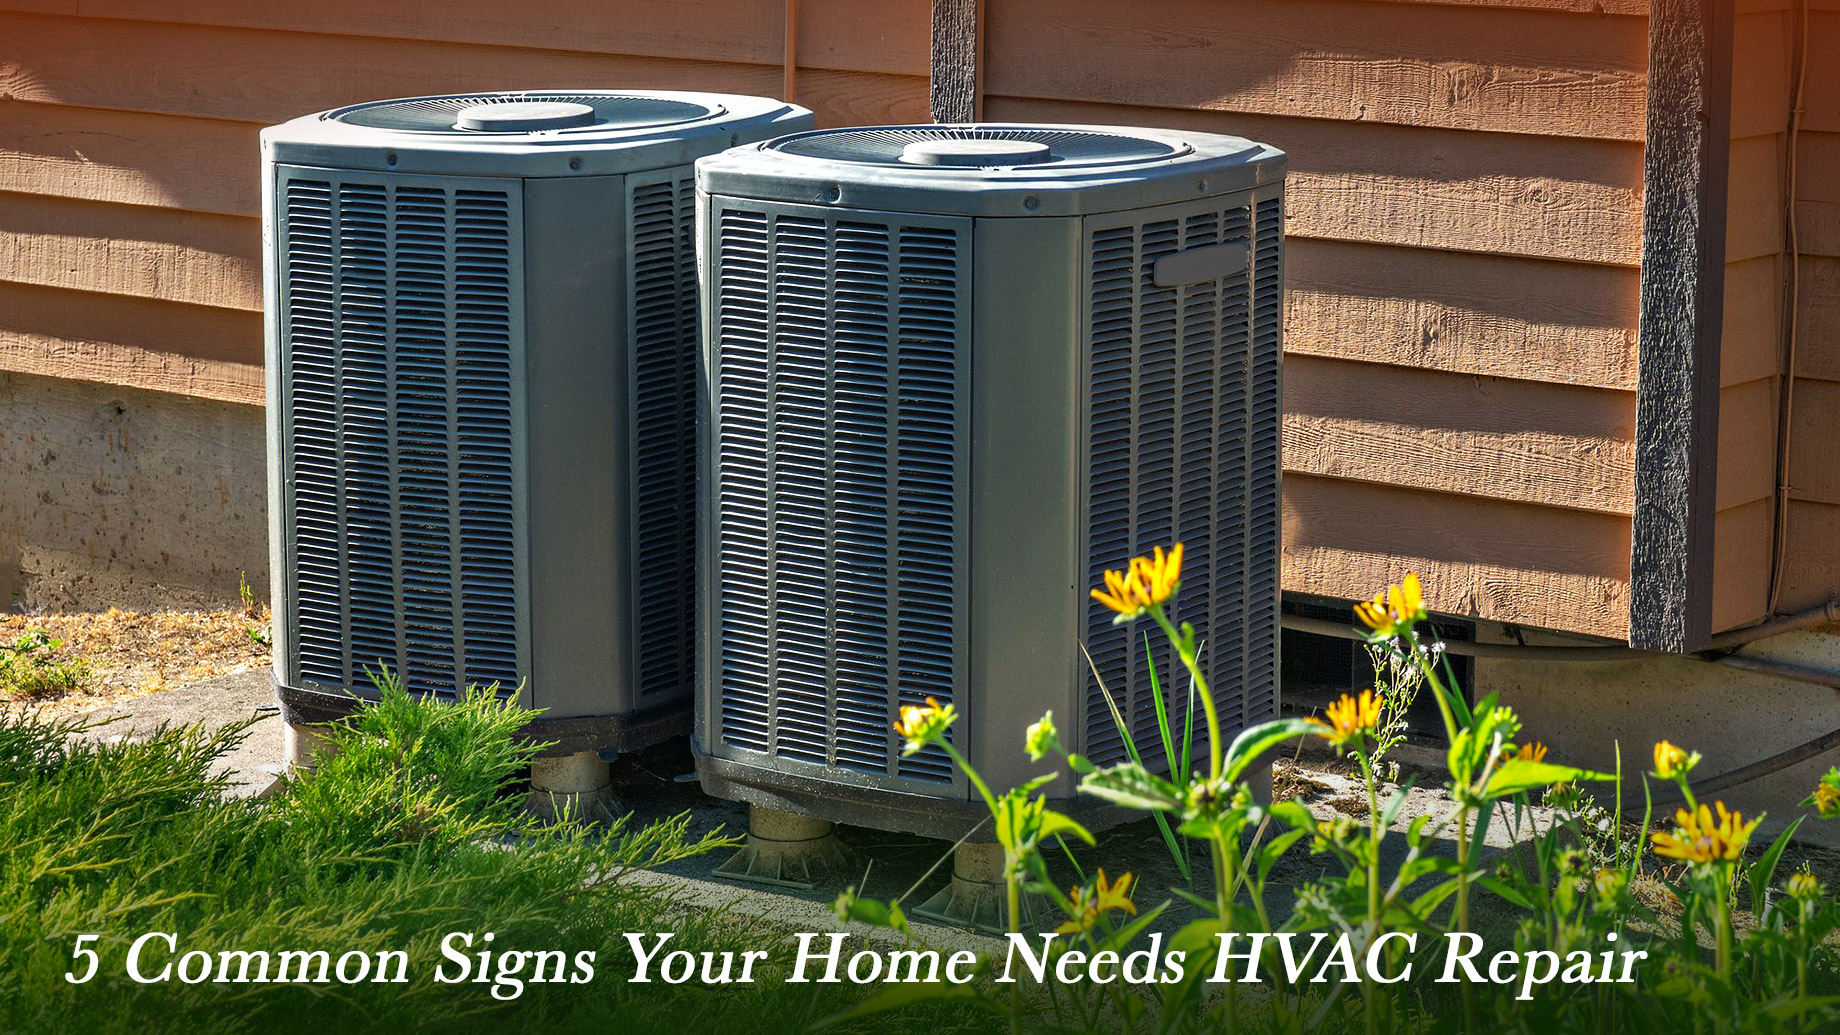 5 Common Signs Your Home Needs HVAC Repair